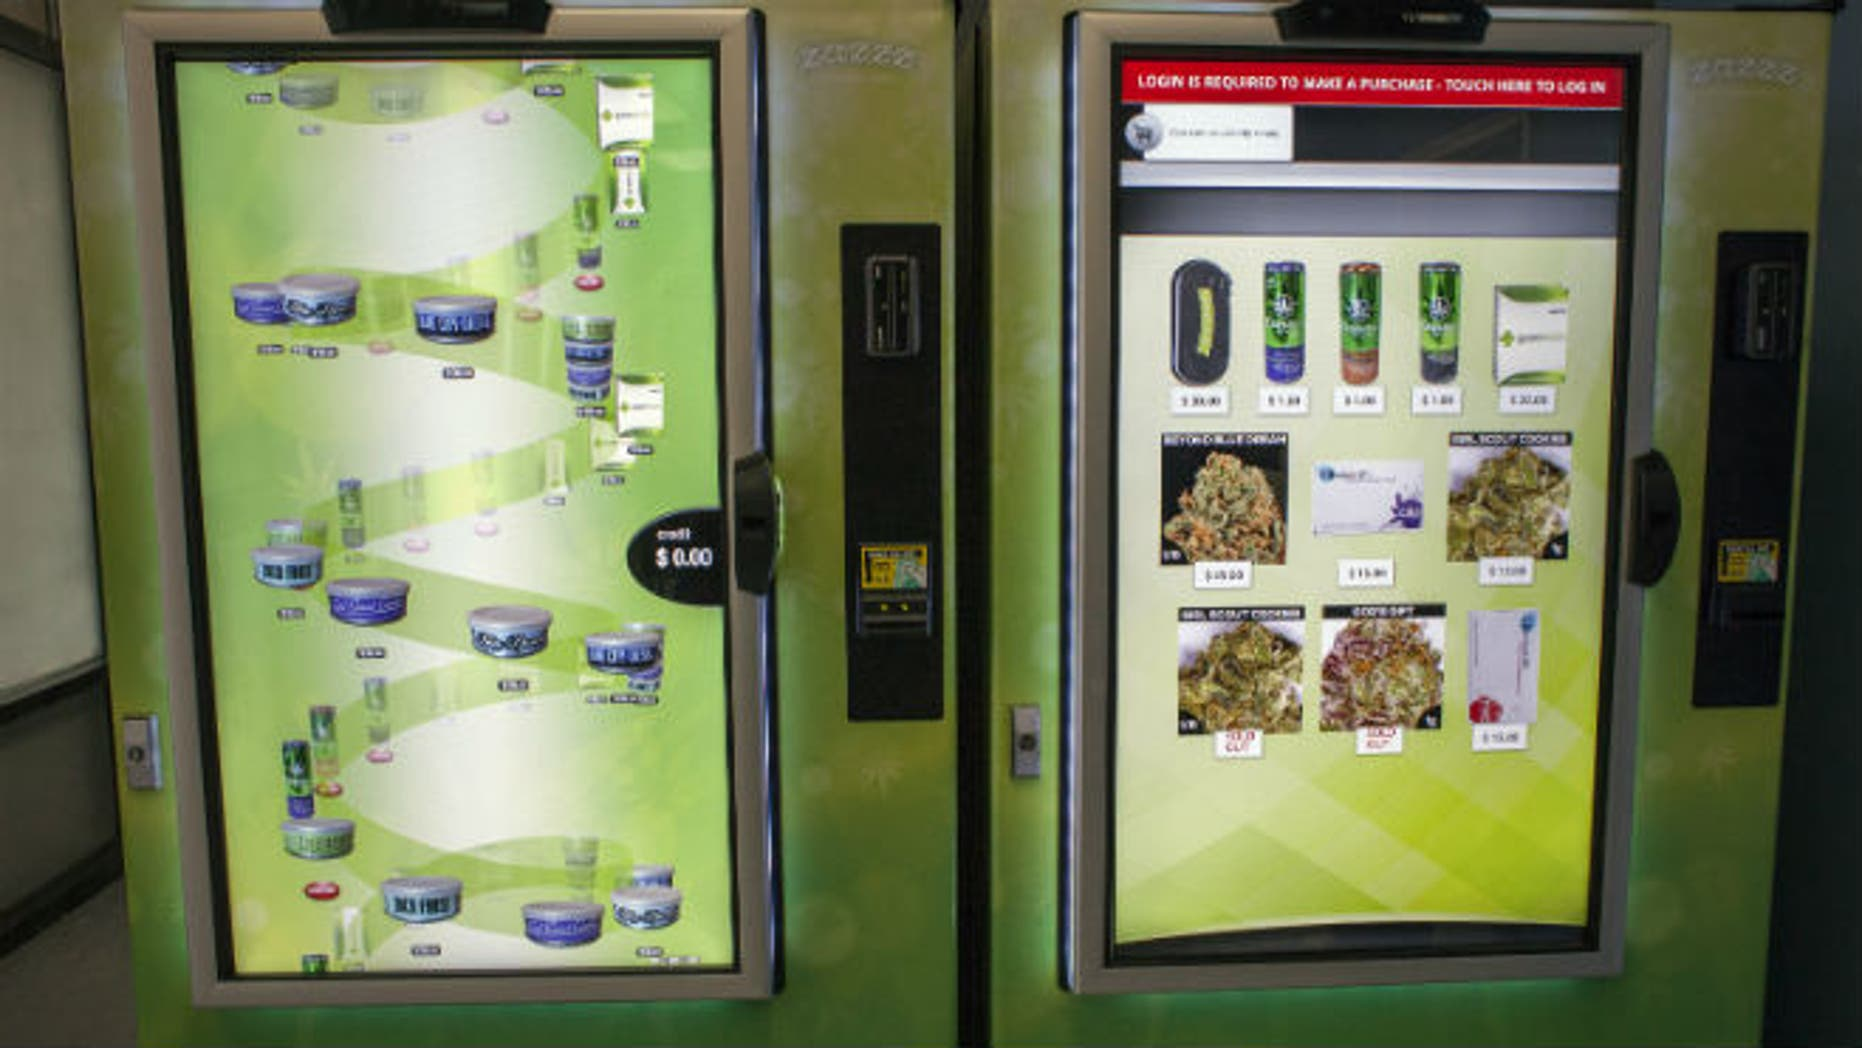 2015A view of ZaZZZ vending machines that contain cannabis flower, hemp-oil energy drinks, and other merchandise at Seattle Caregivers, a medical marijuana dispensary, in Seattle, Washington February 3, 2015. REUTERS/David Ryder